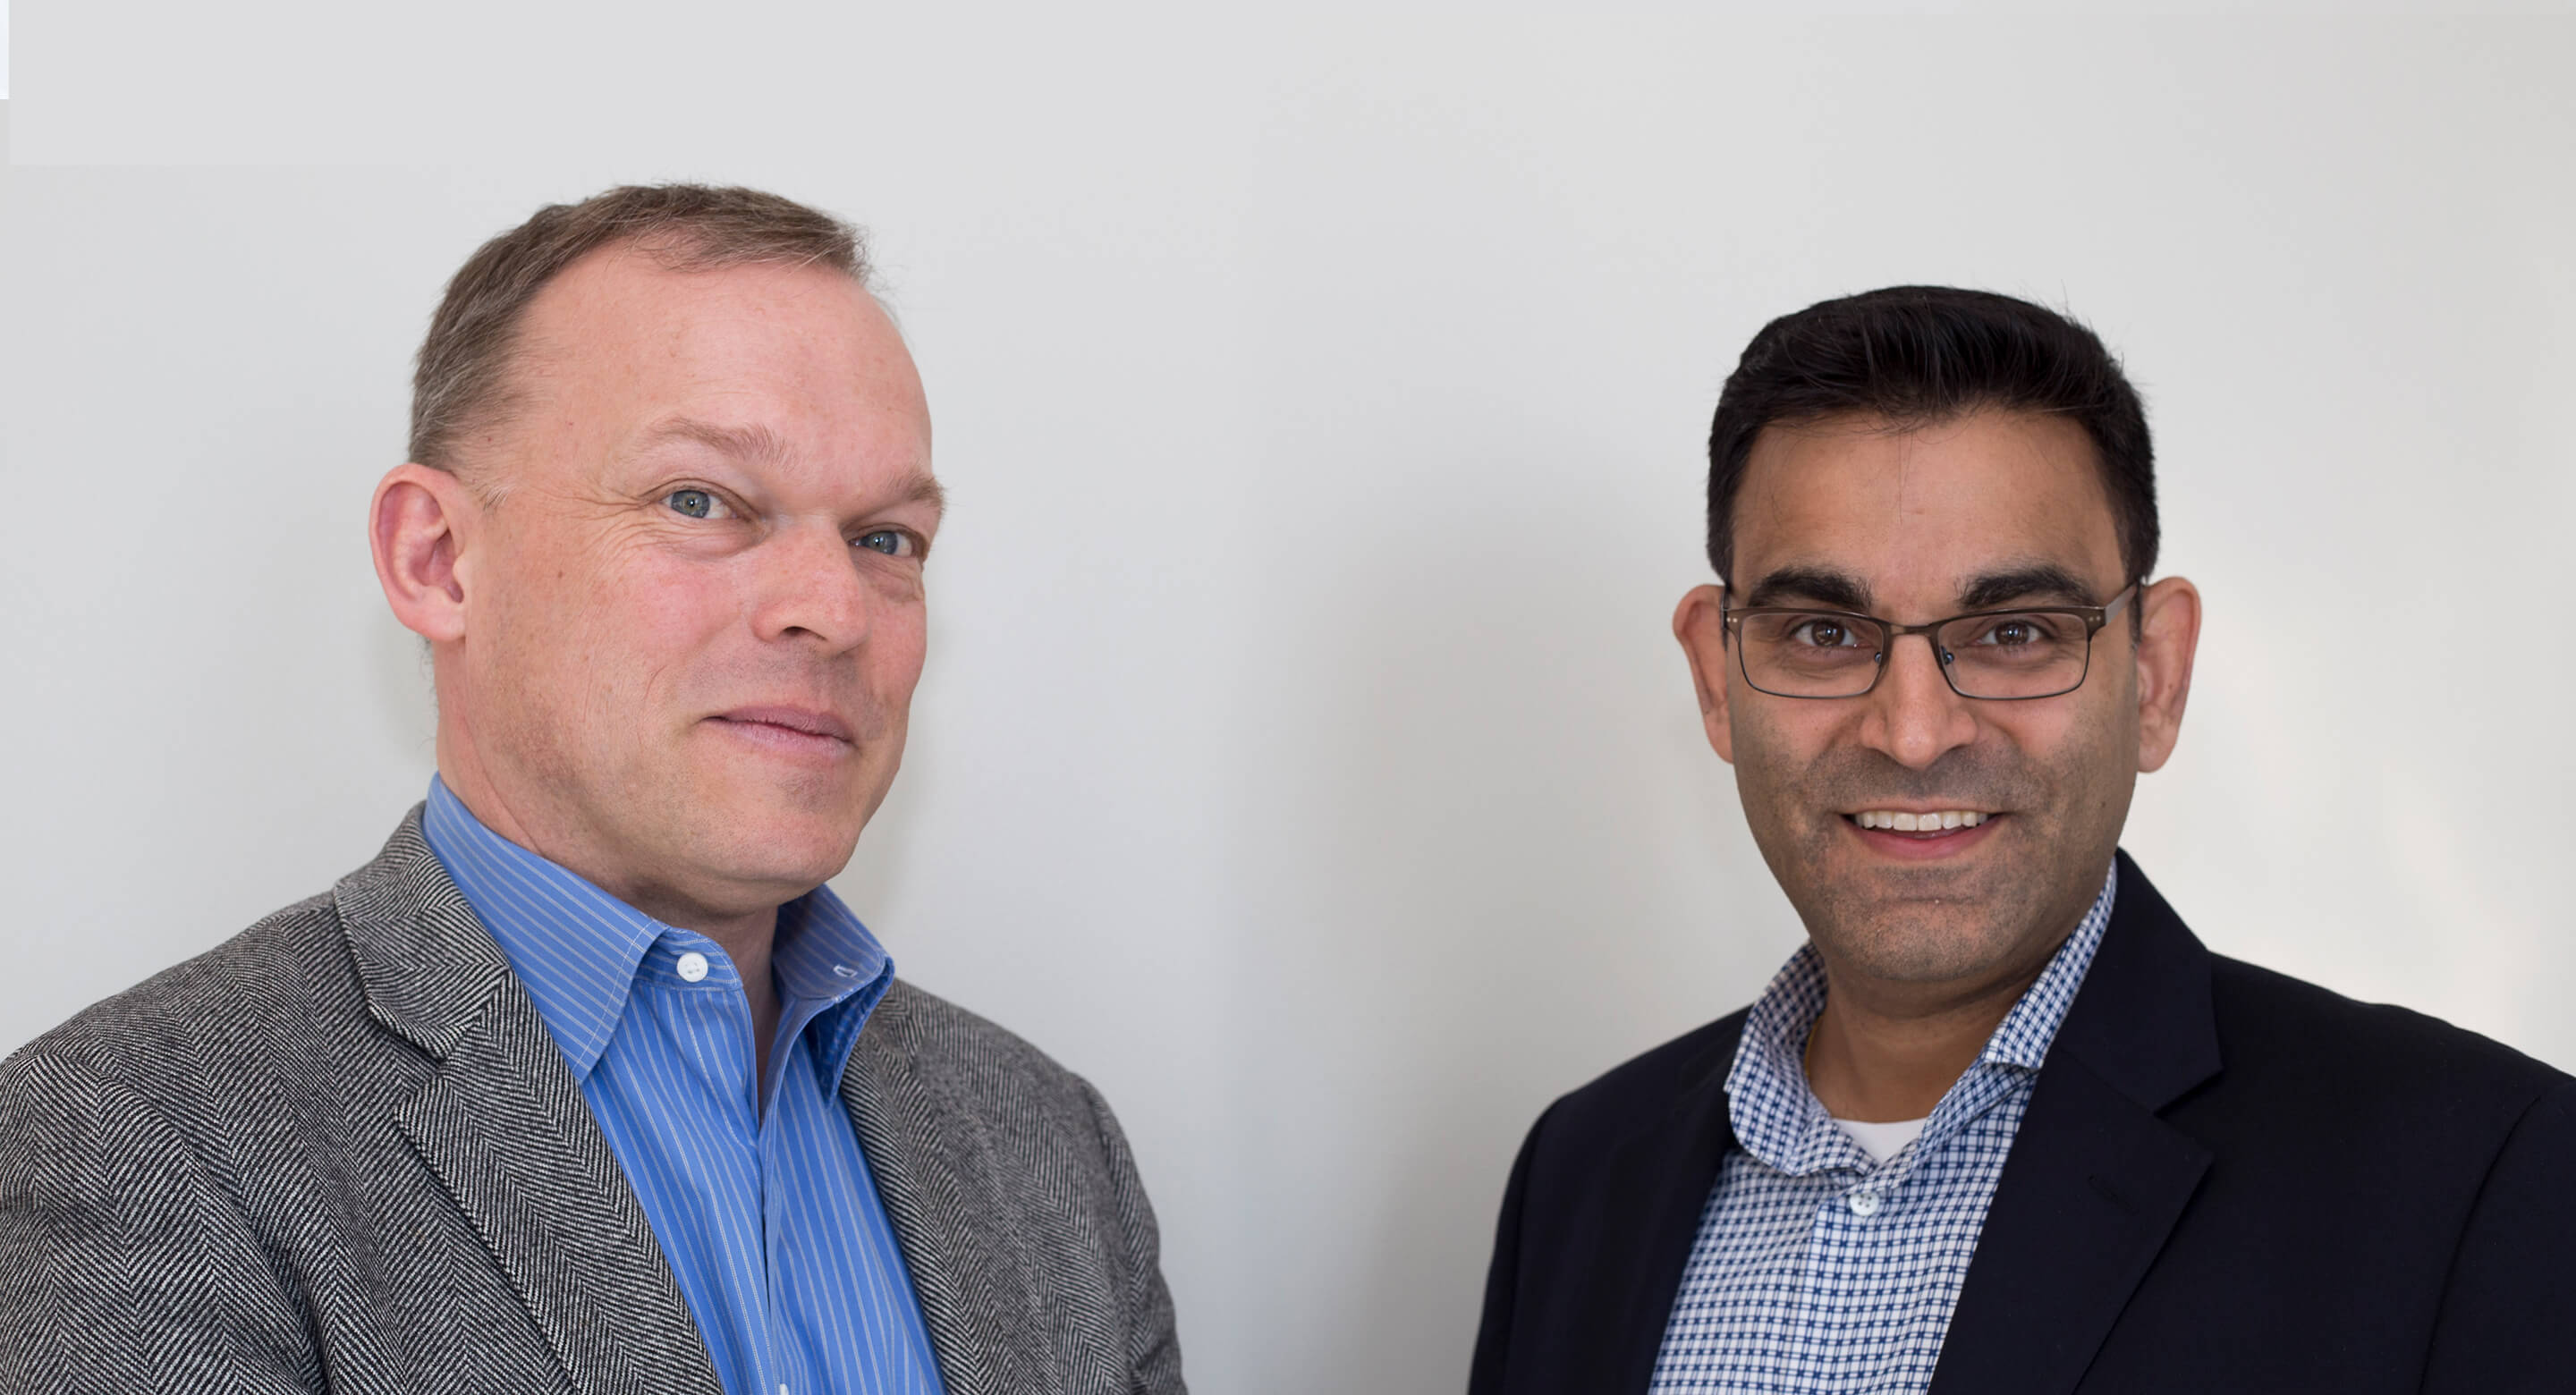 Dr. Sean Hill, Director of the Krembil Centre for Neuroinformatics, and Dr. Neil Vasdev, Director of the Azrieli Centre for Neuro-Radiochemistry